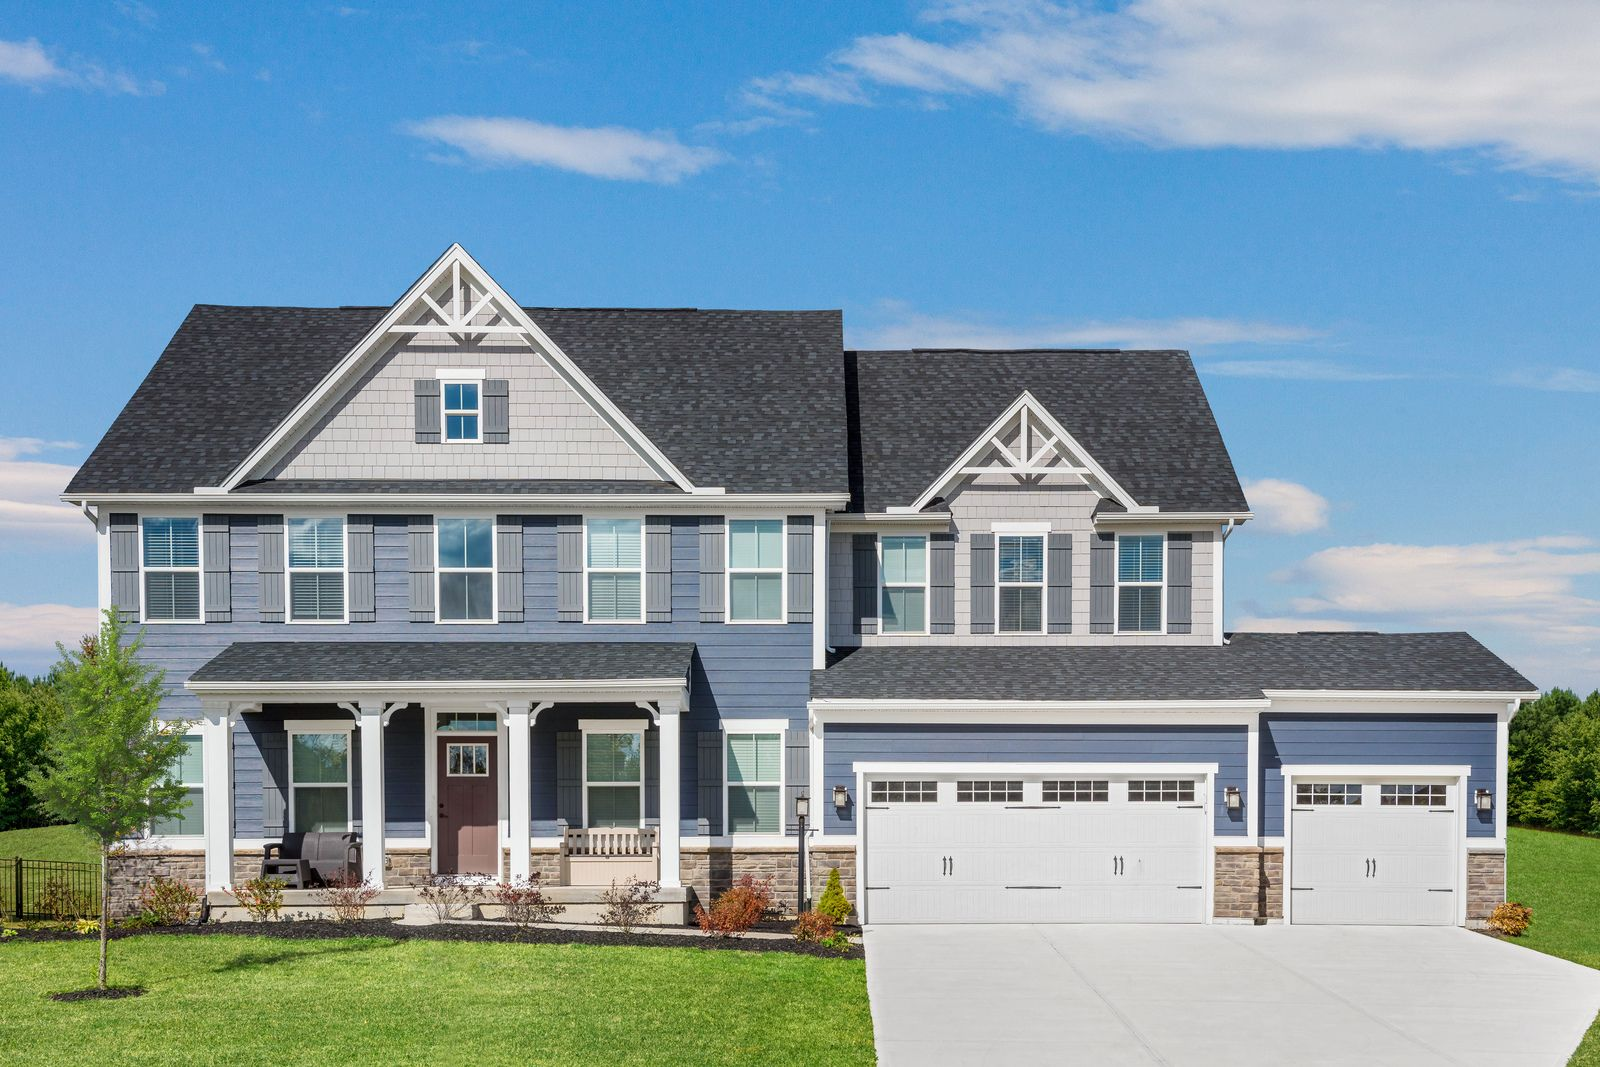 WELCOME TO HARVEST RIDGE IN MT. AIRY, MD